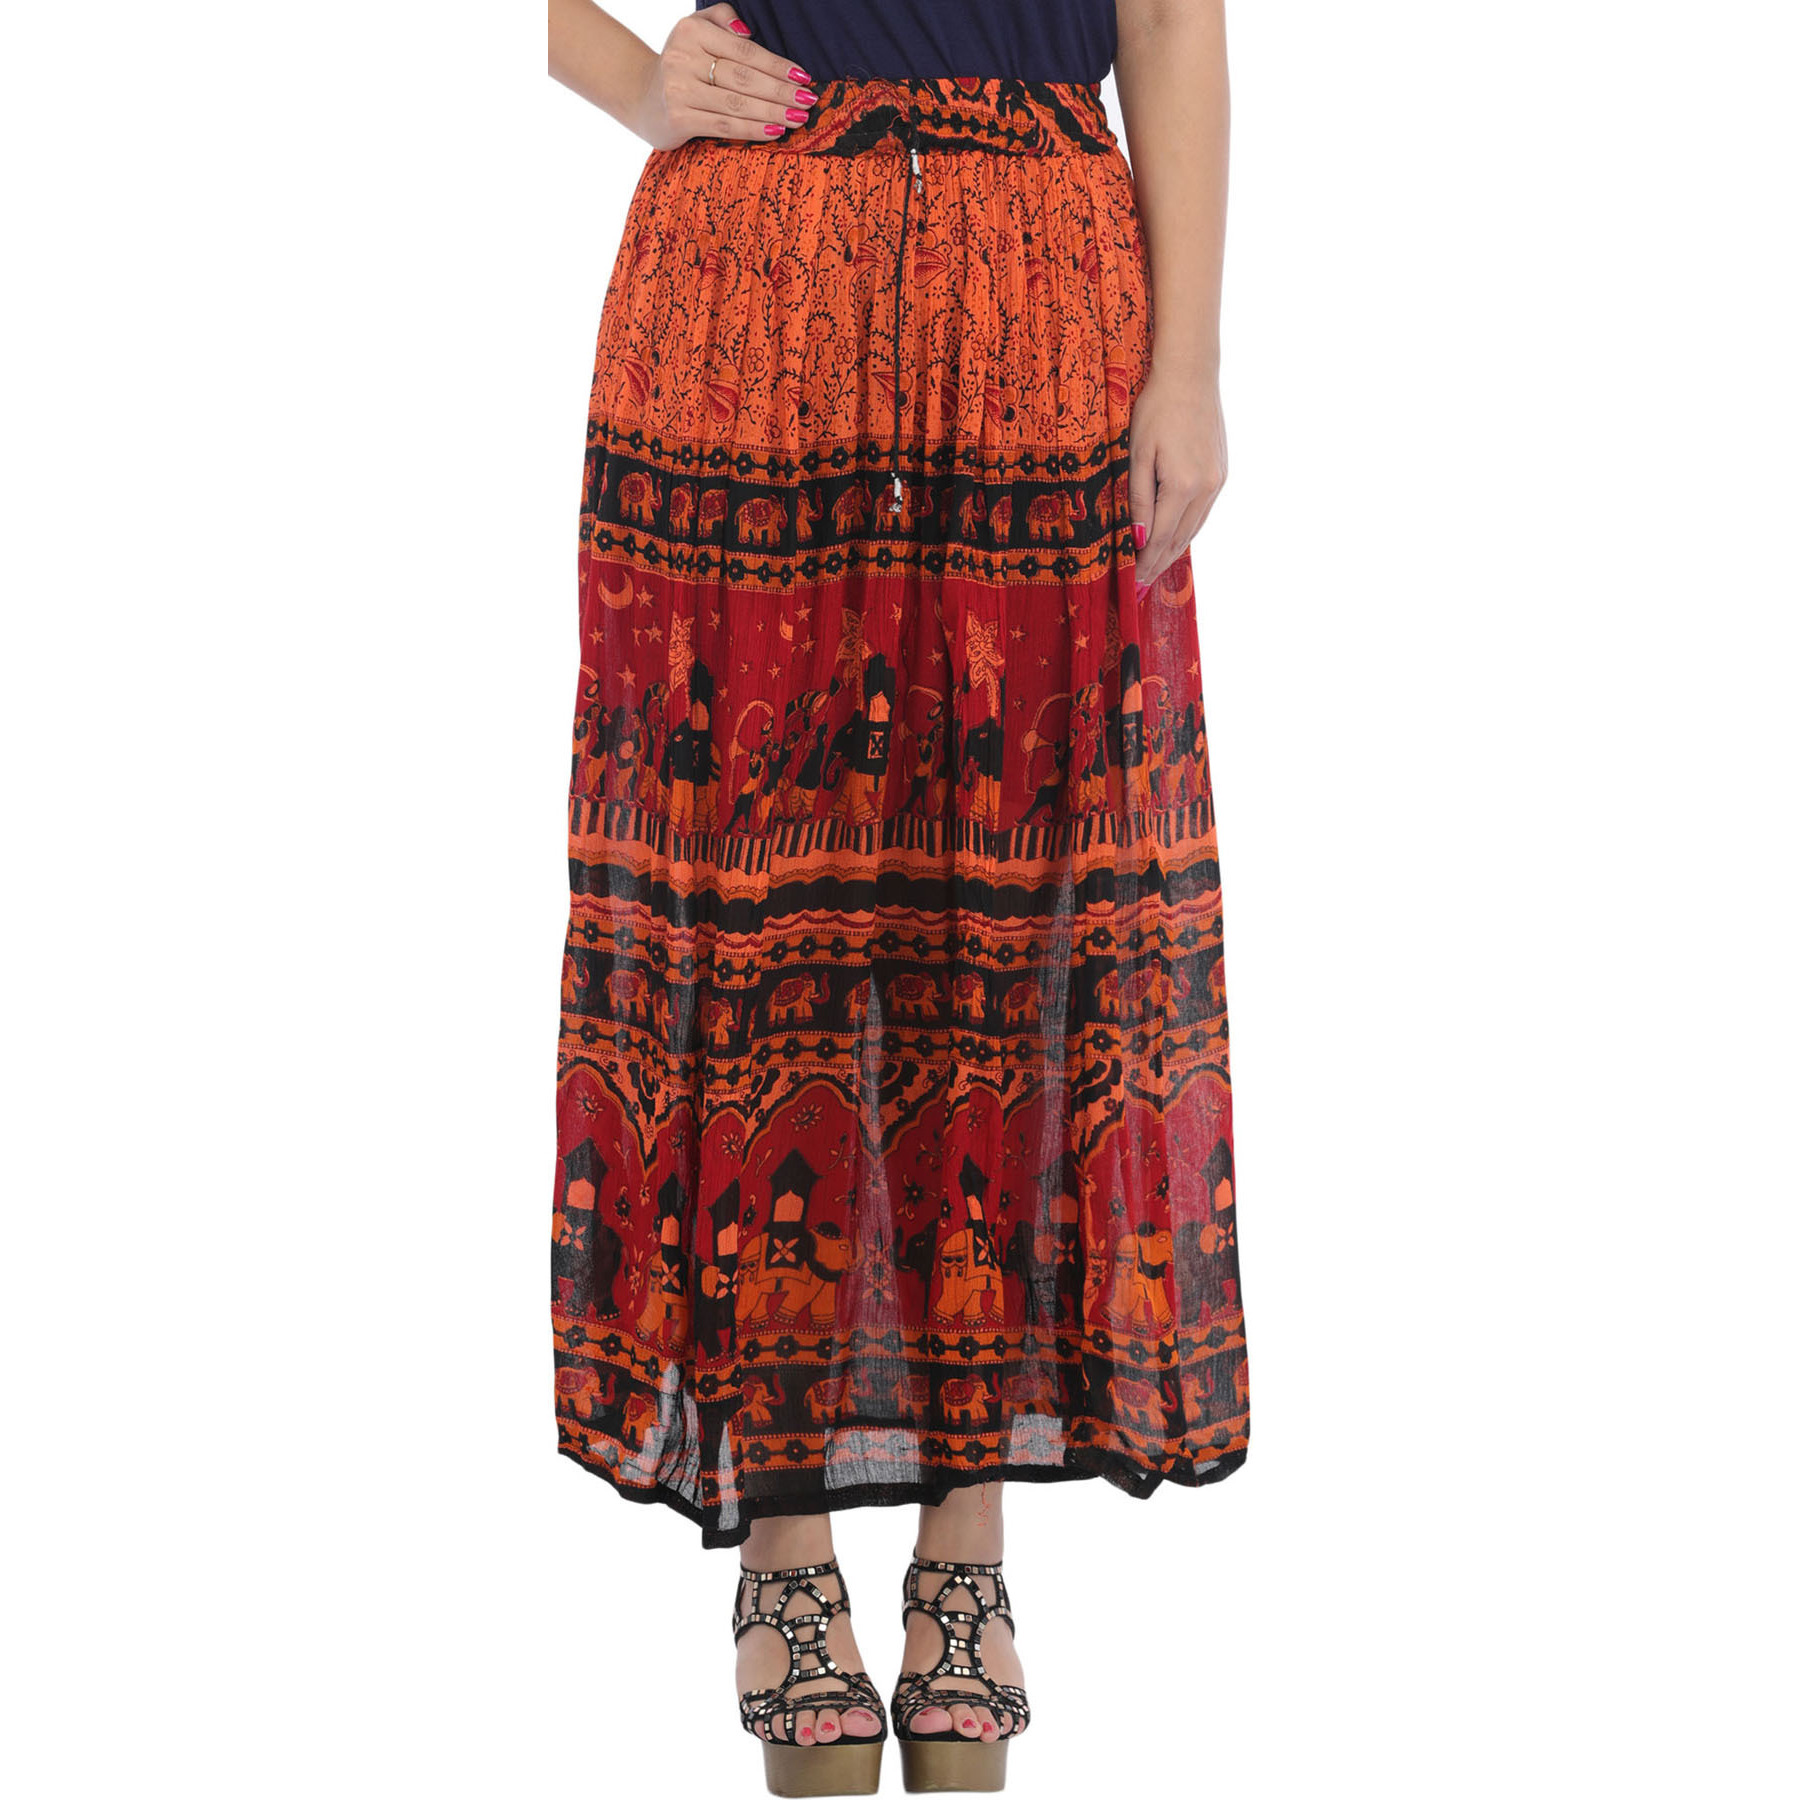 Red and Orange Elastic Long Skirt with Printed Elephants